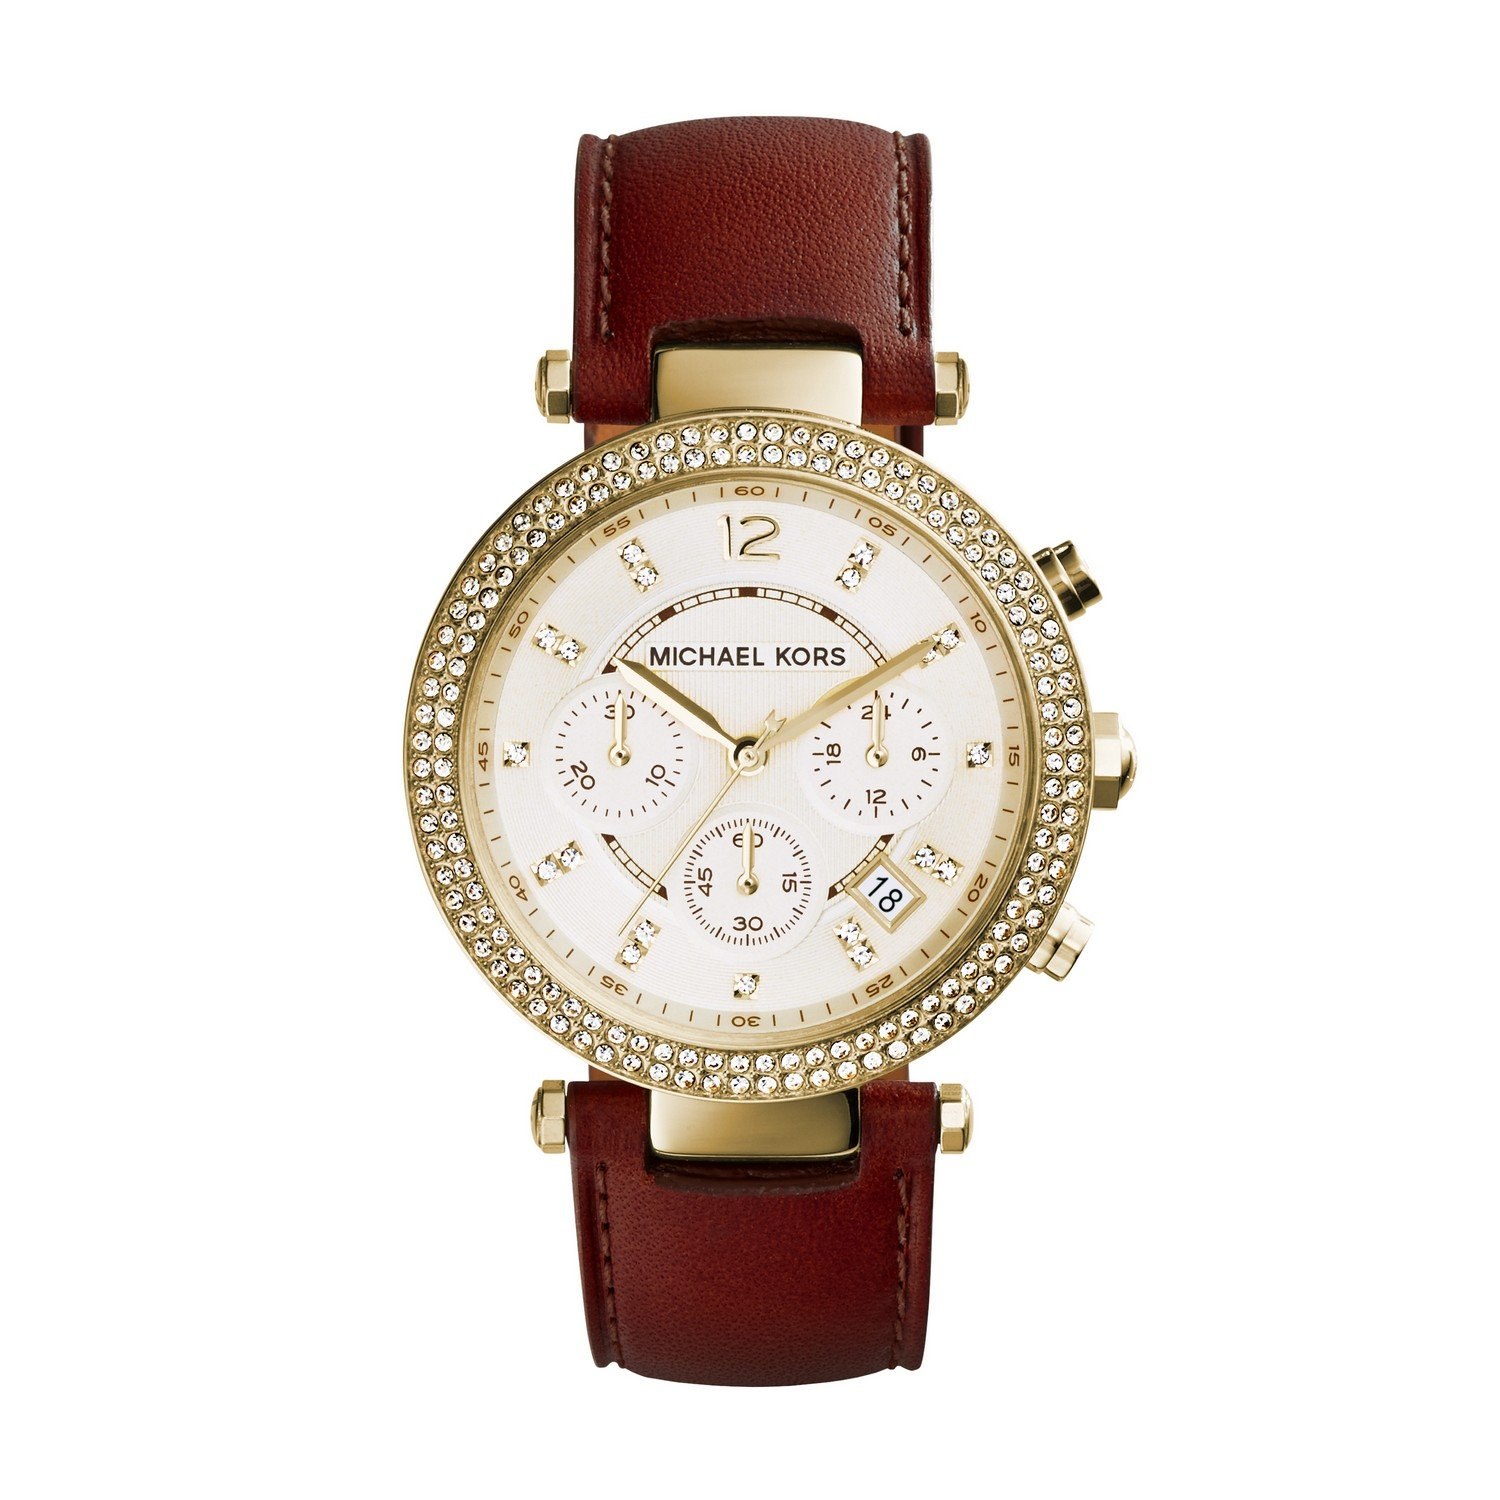 3b1226acda36 Amazon.com  Michael Kors Women s Parker Gold-Tone Watch MK2249  Michael Kors   Watches